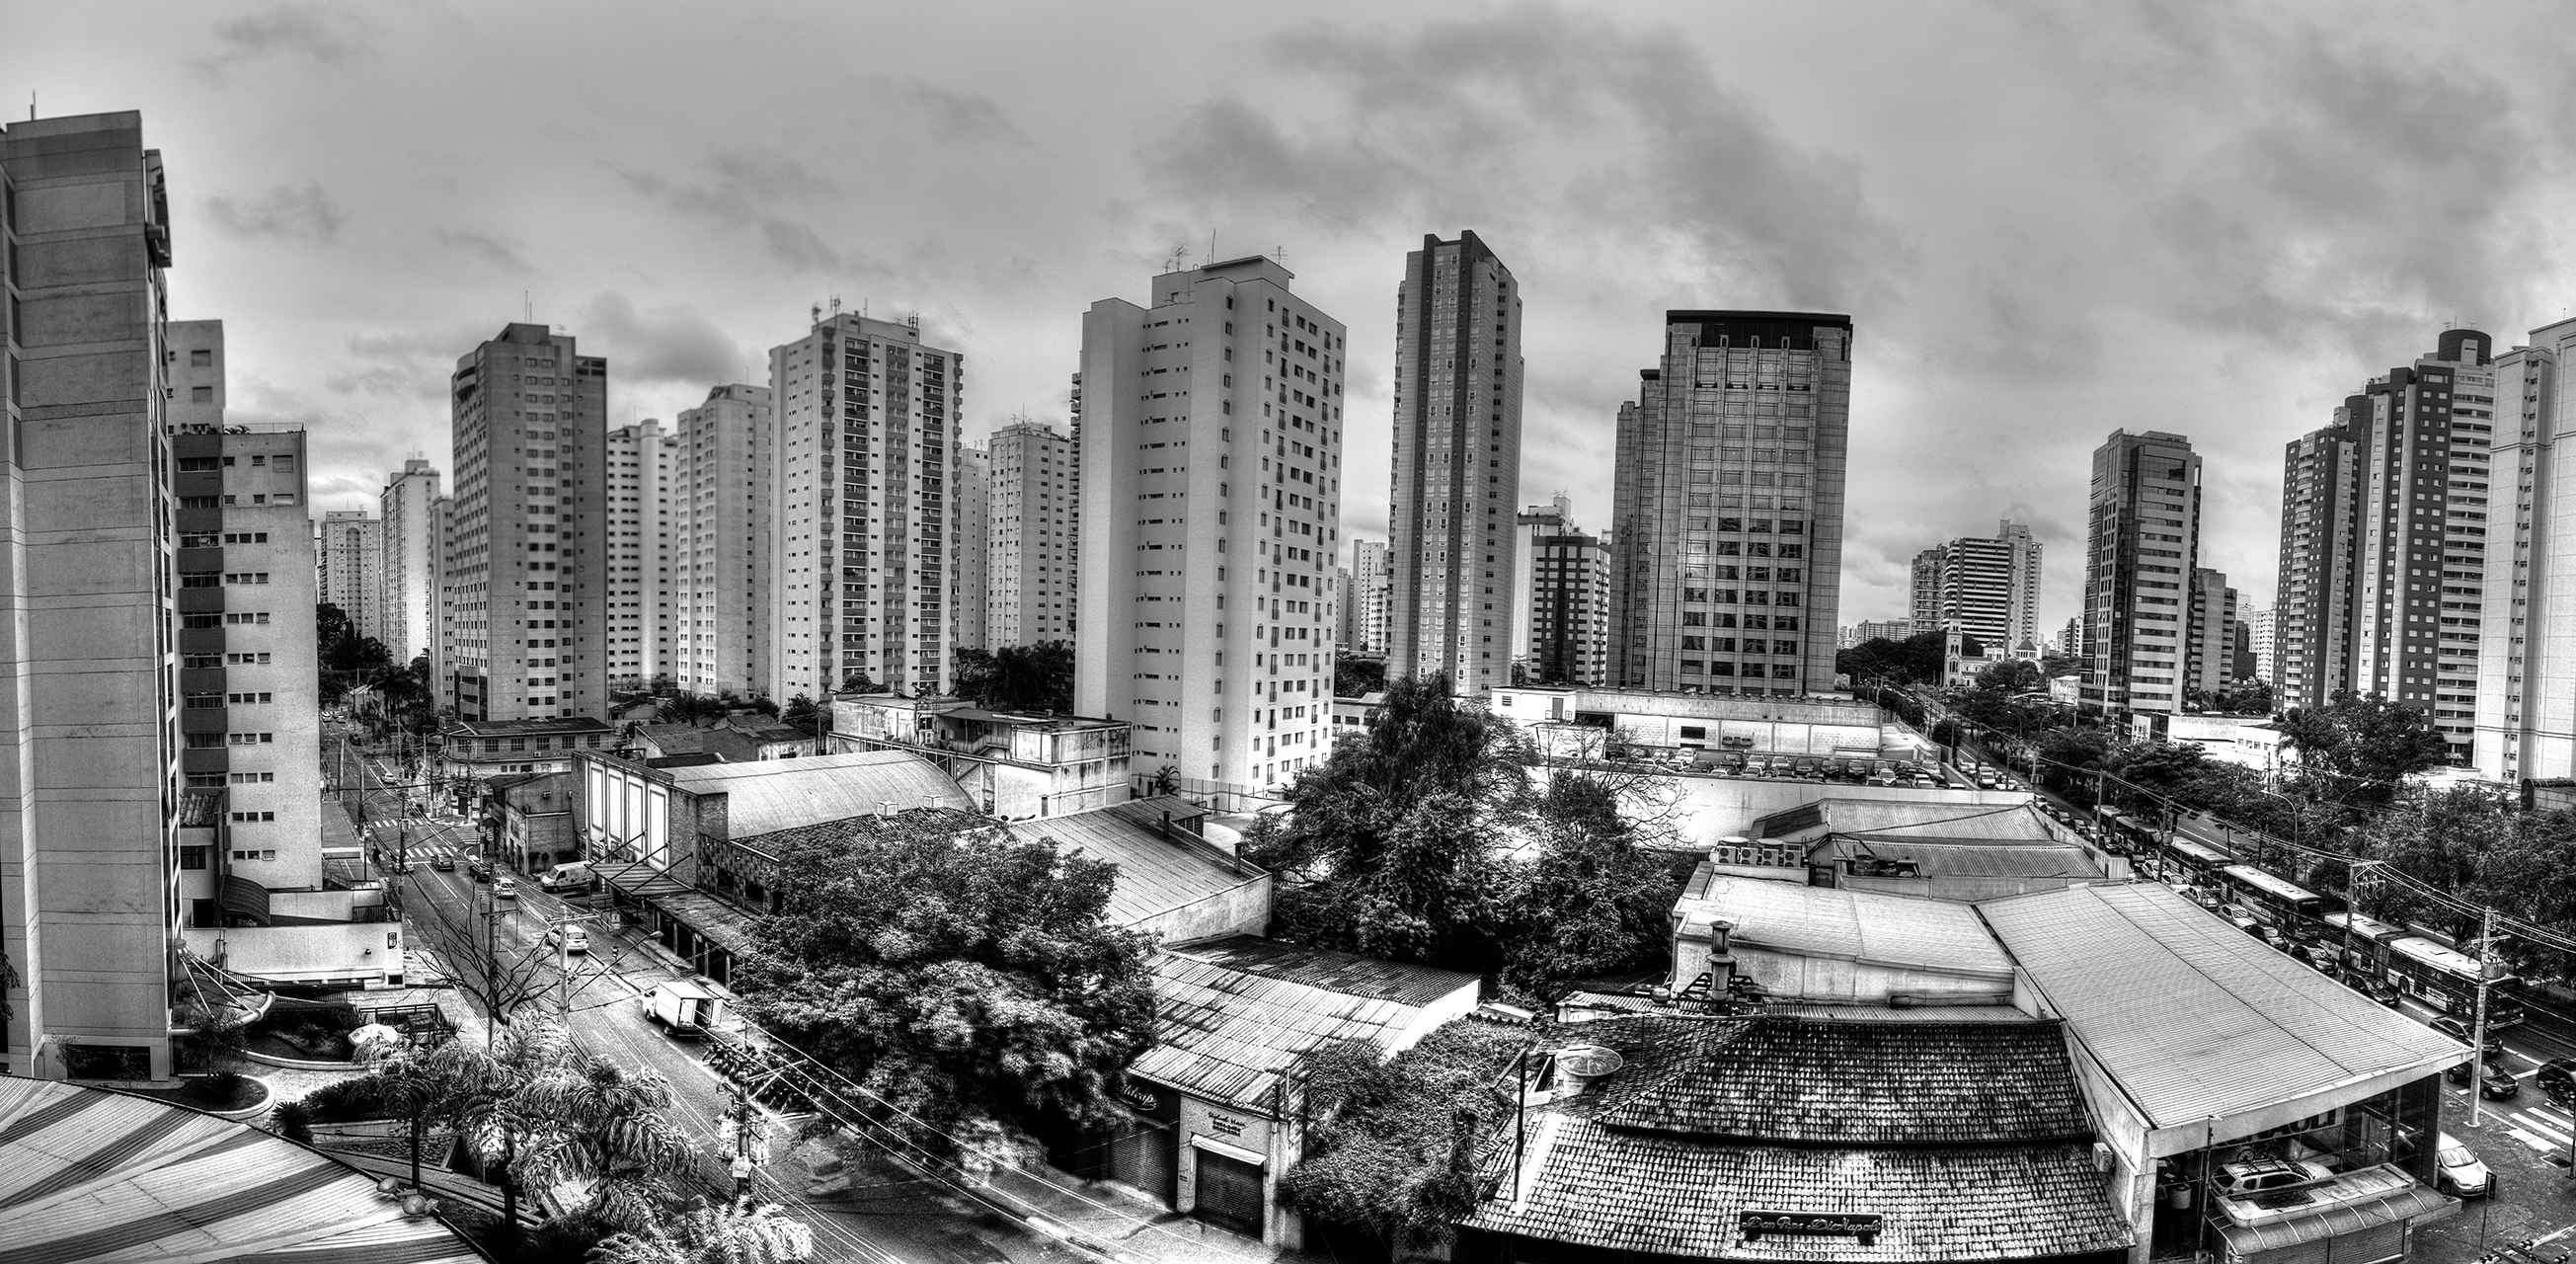 Sao Paulo from my hotel window